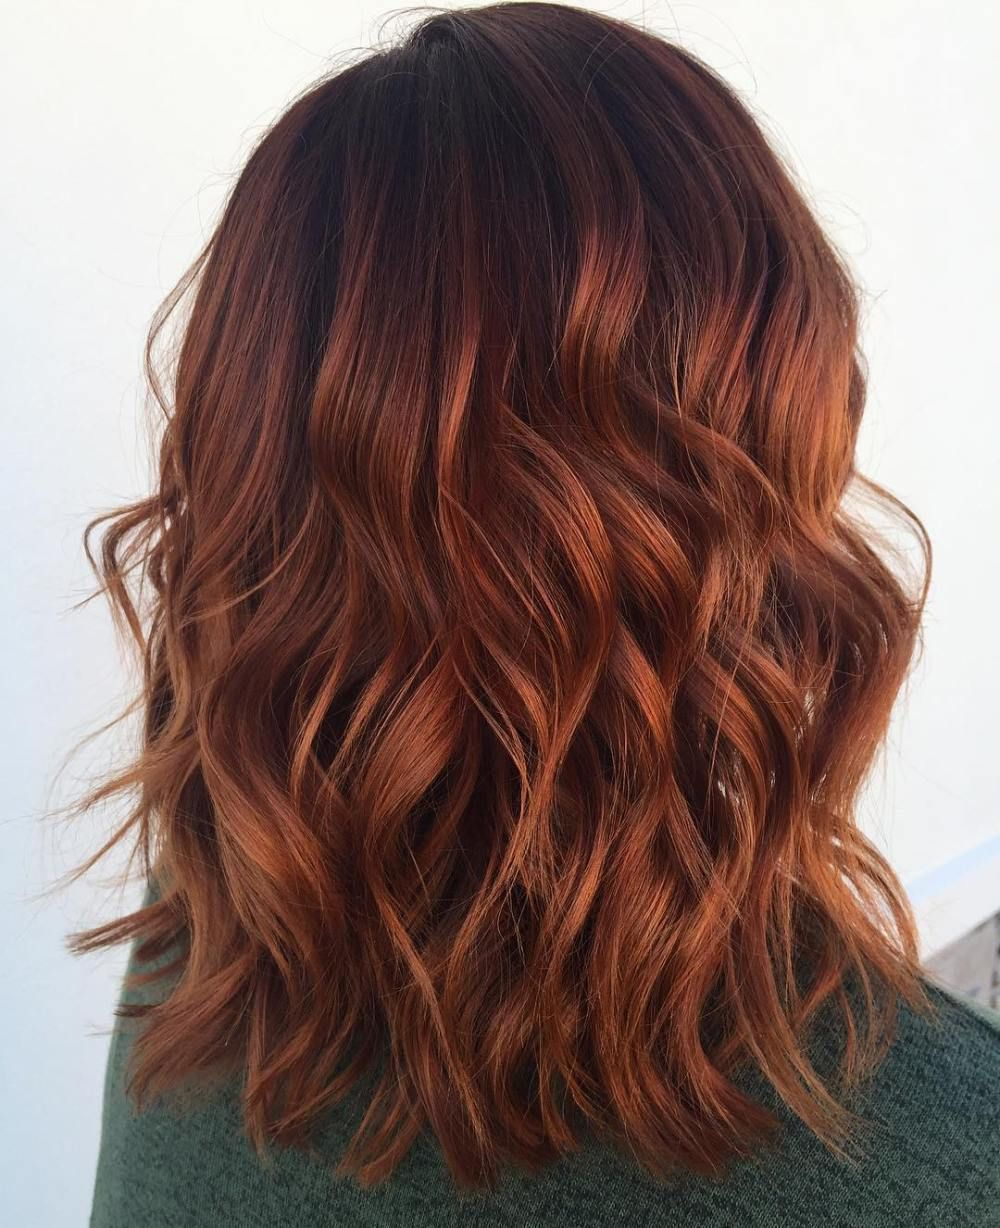 Hair Colors And Styles Wavy Copper Lobare You Looking For Ginger Hair Color Styles See